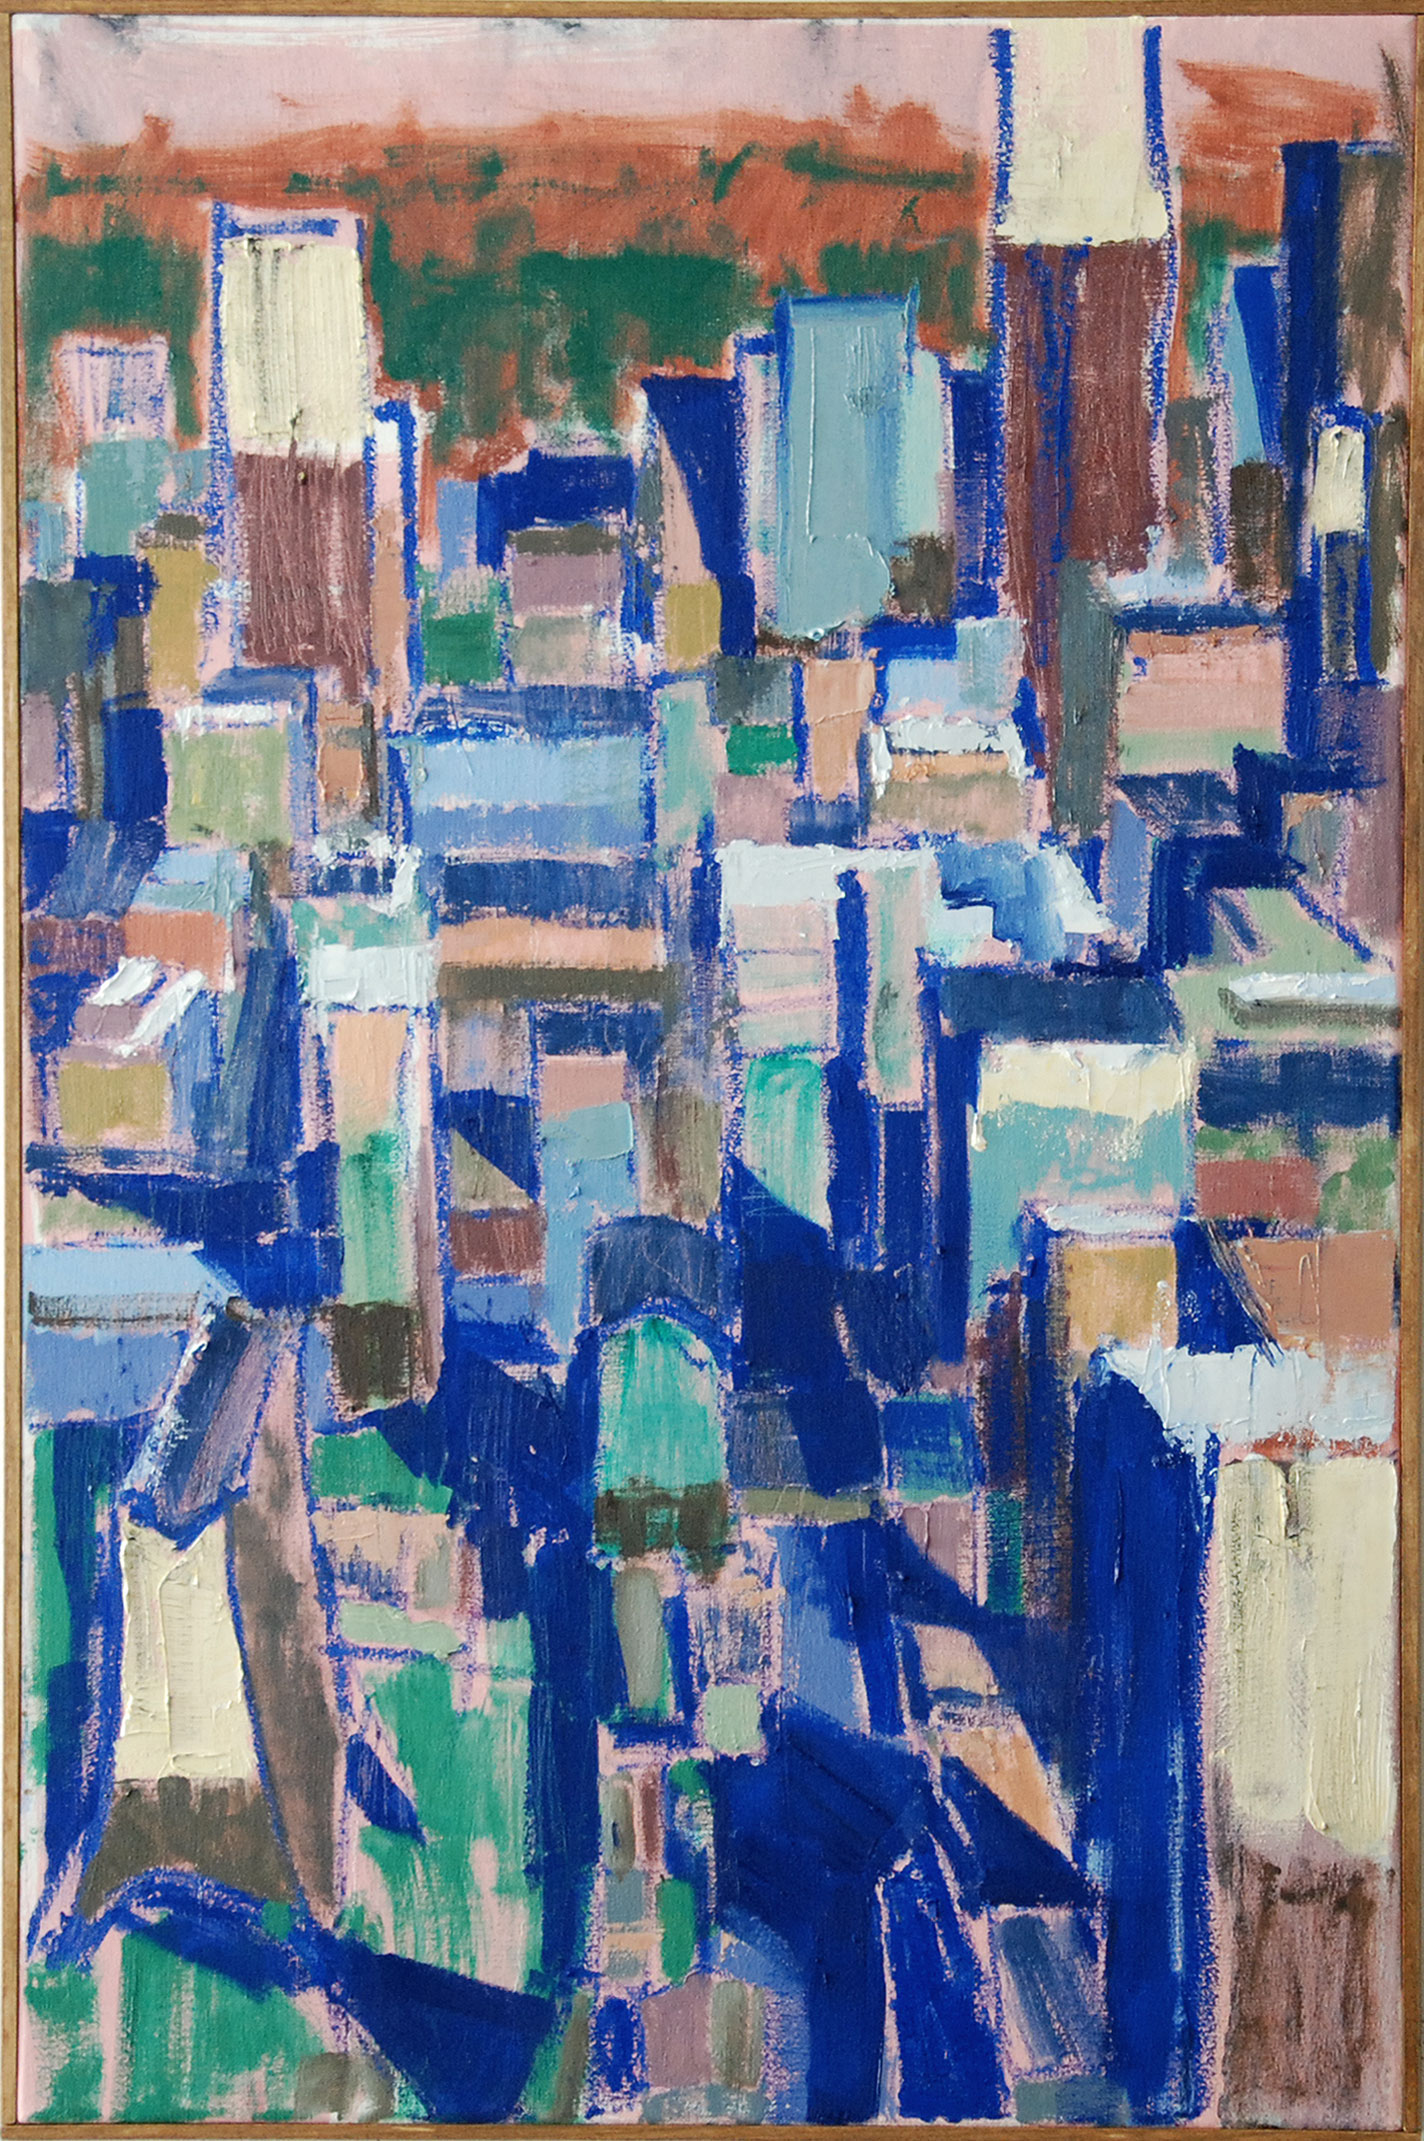 Yorkville, 2019. 36 x 24 inches, oil on canvas.